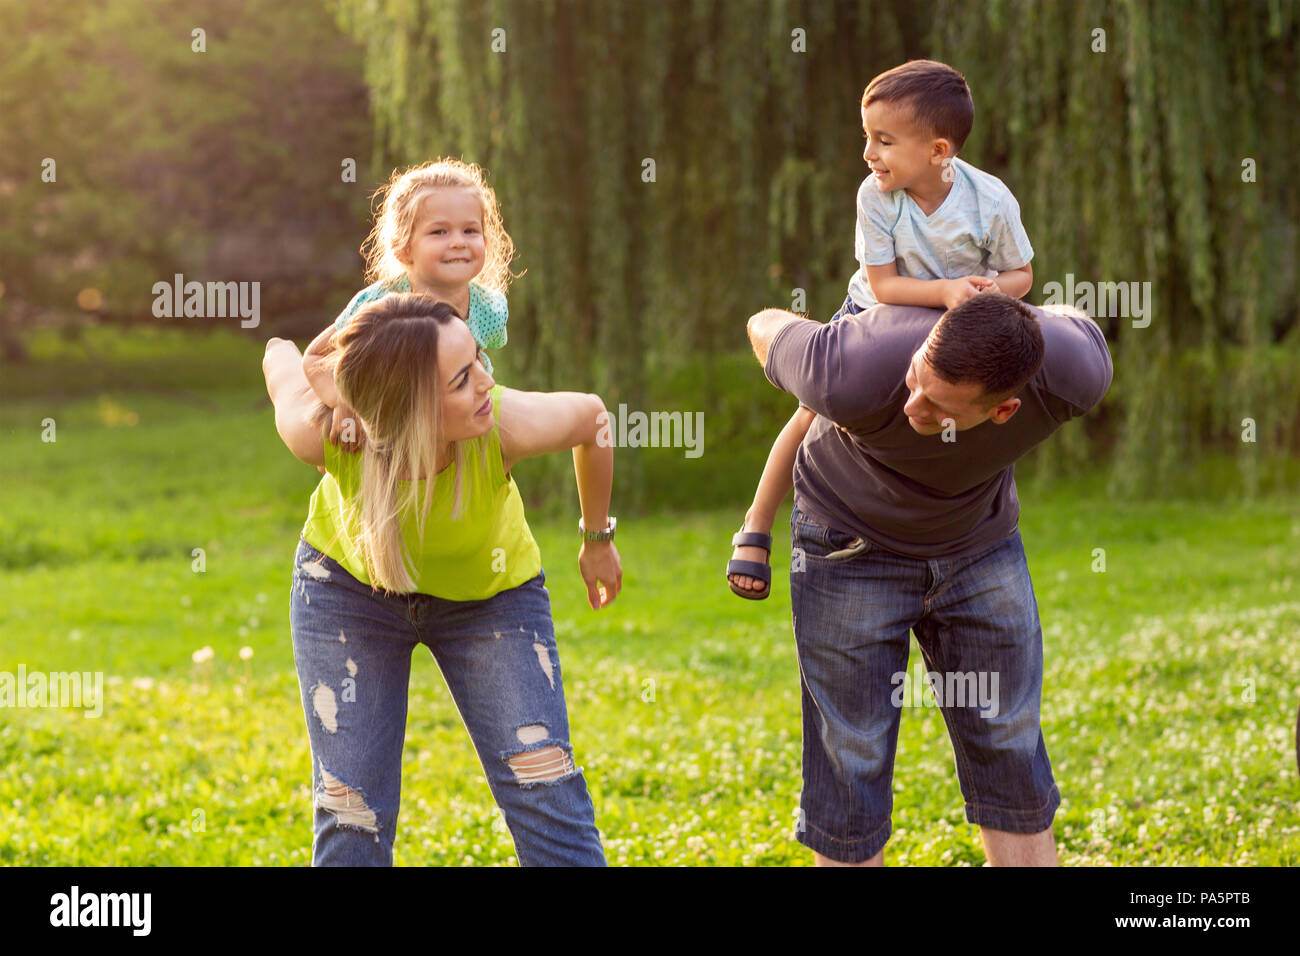 Heureux les parents qui piggyback ride aux enfants Photo Stock